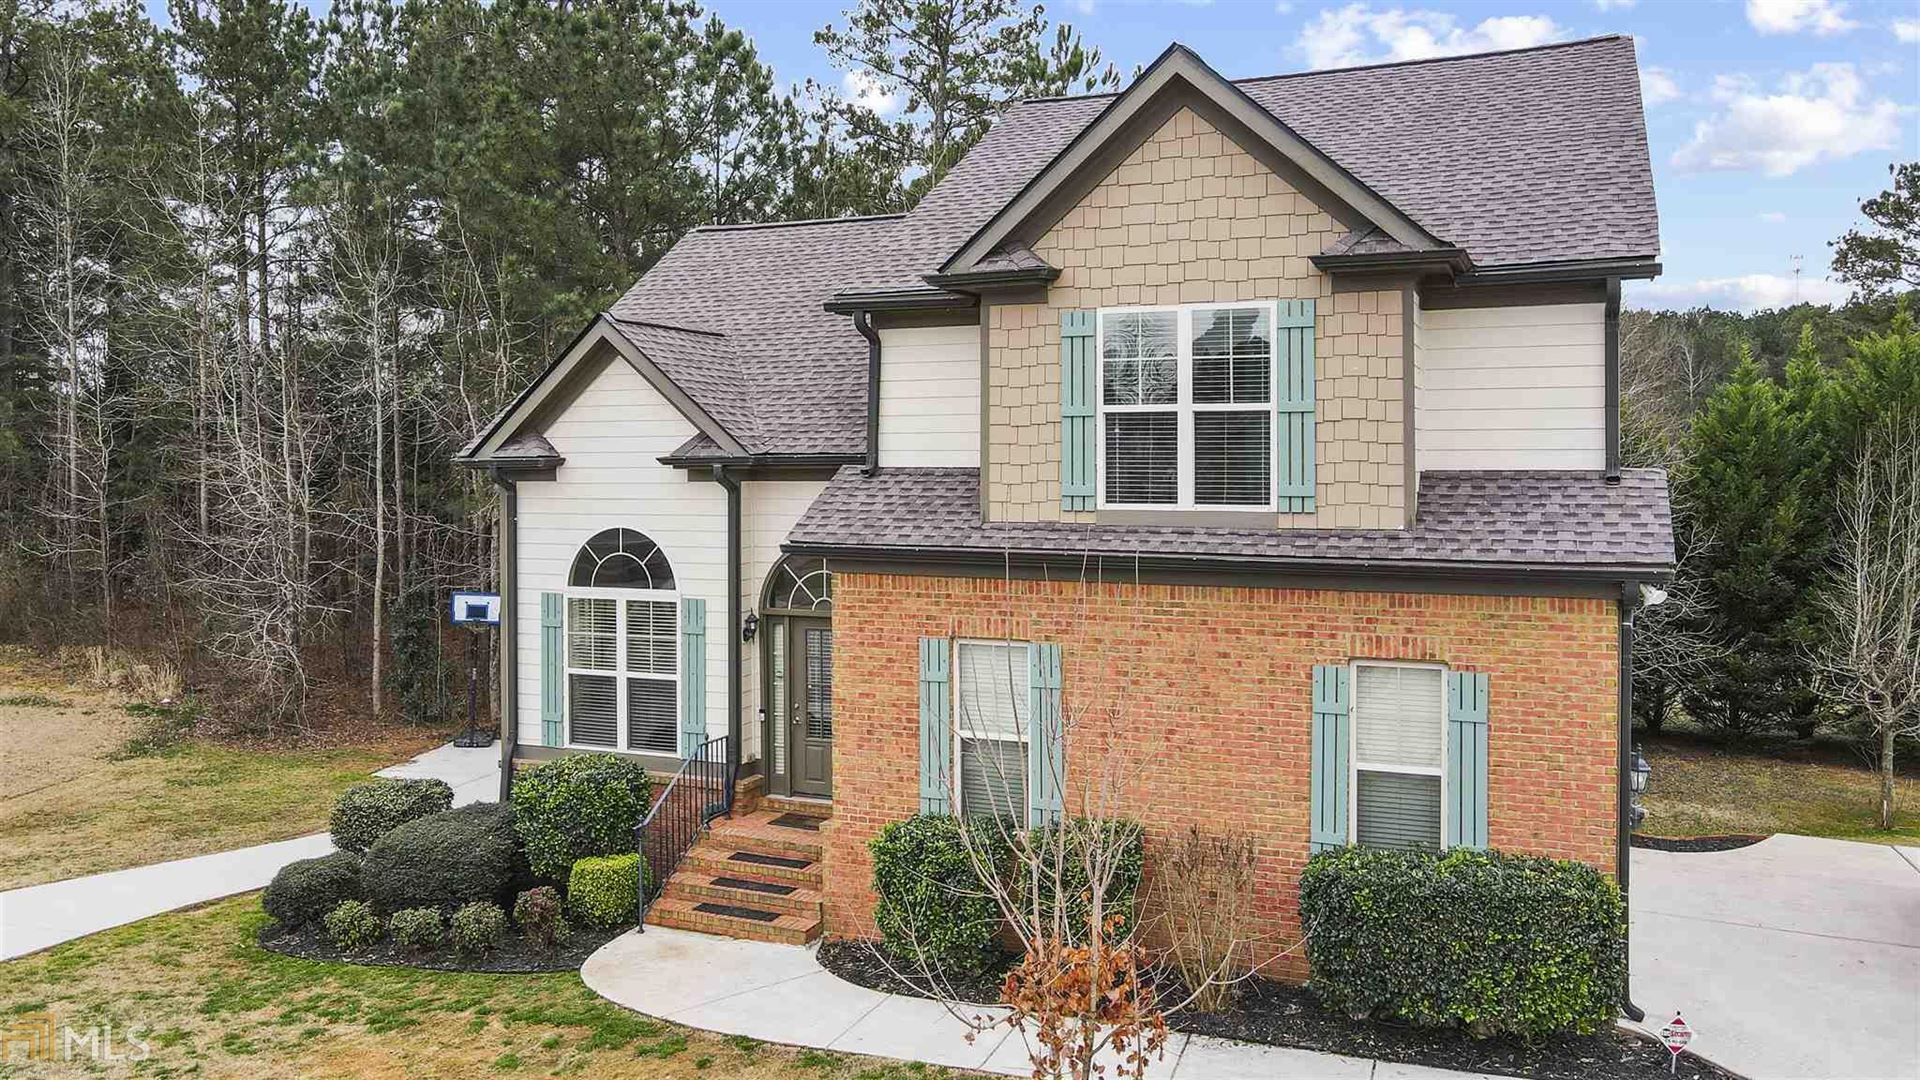 259 Spinner Dr, Jefferson, GA 30549 - #: 8938136